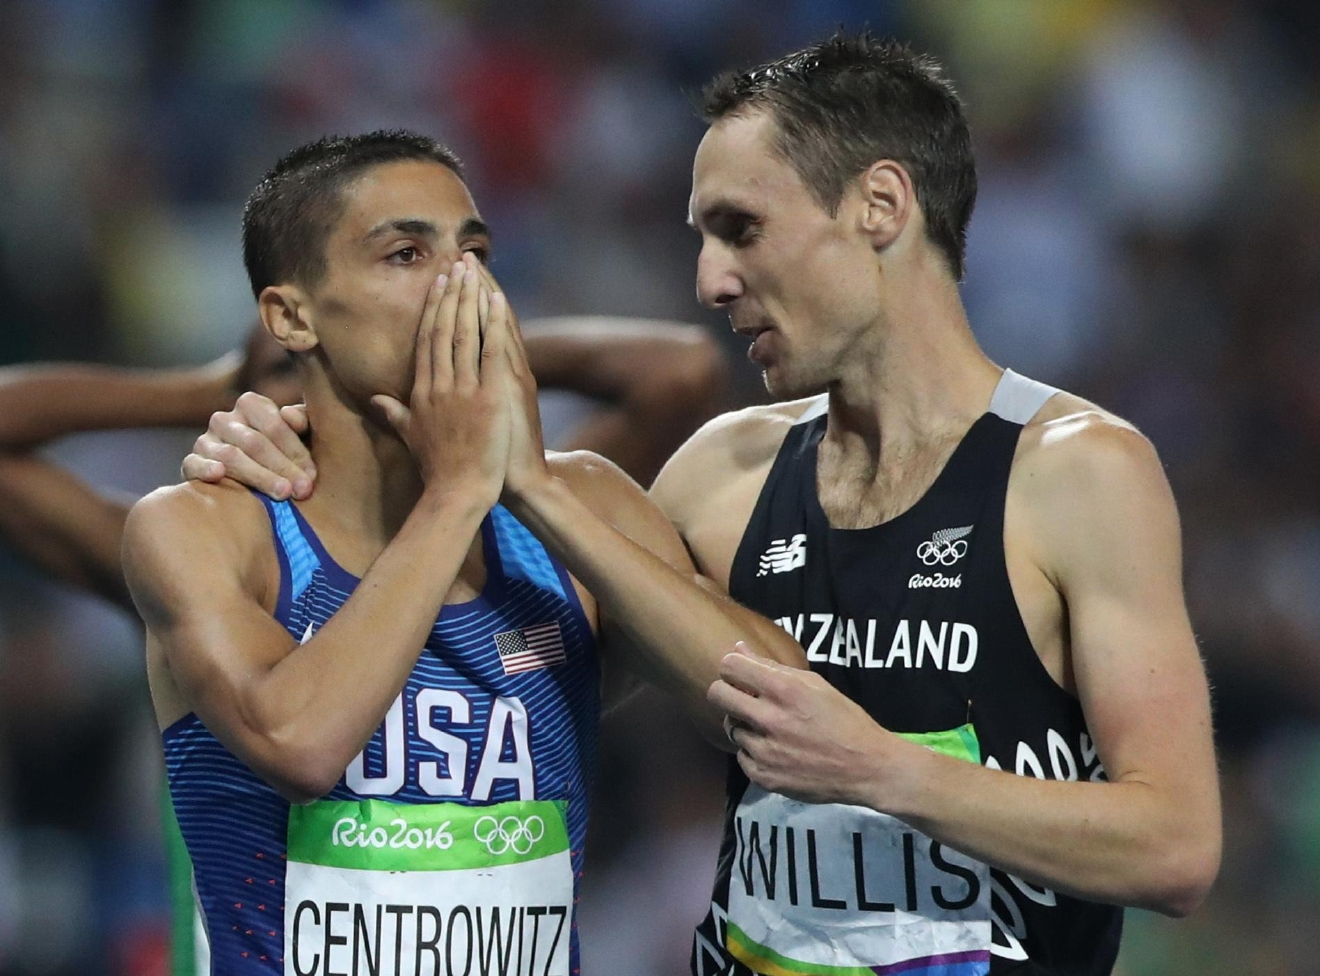 United States' Matthew Centrowitz, left, celebrates as he is congratulated by New Zealand's Nicholas Willis after winning the men's 1500-meter final during the athletics competition at the Summer Olympics at Olympic stadium in Rio de Janeiro, Brazil, Saturday, Aug. 20, 2016. (AP Photo/Lee Jin-man)